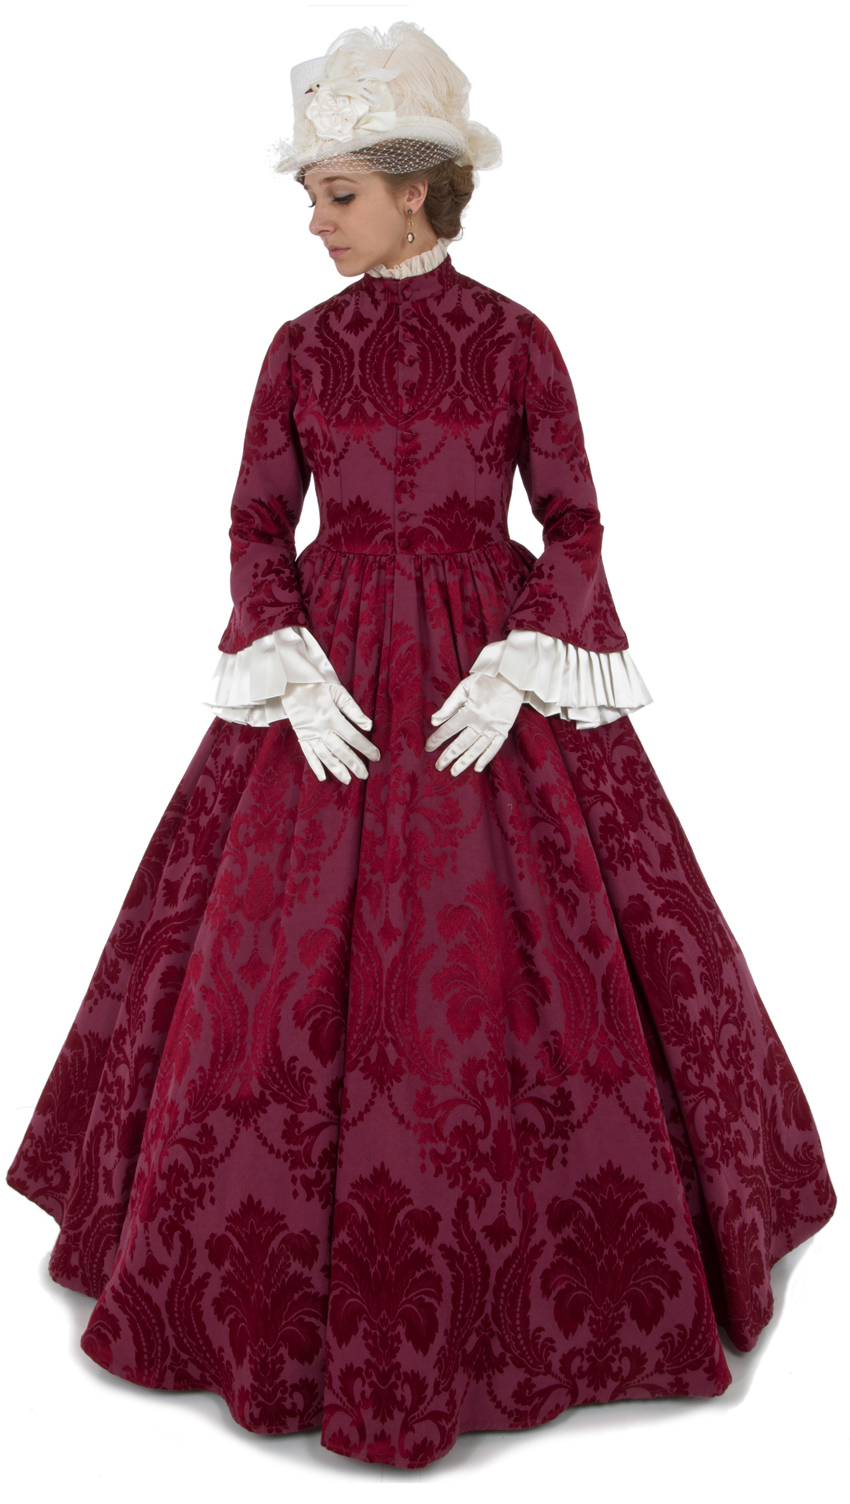 5 Most Popular Victorian Dress Patterns - Recollections Blog